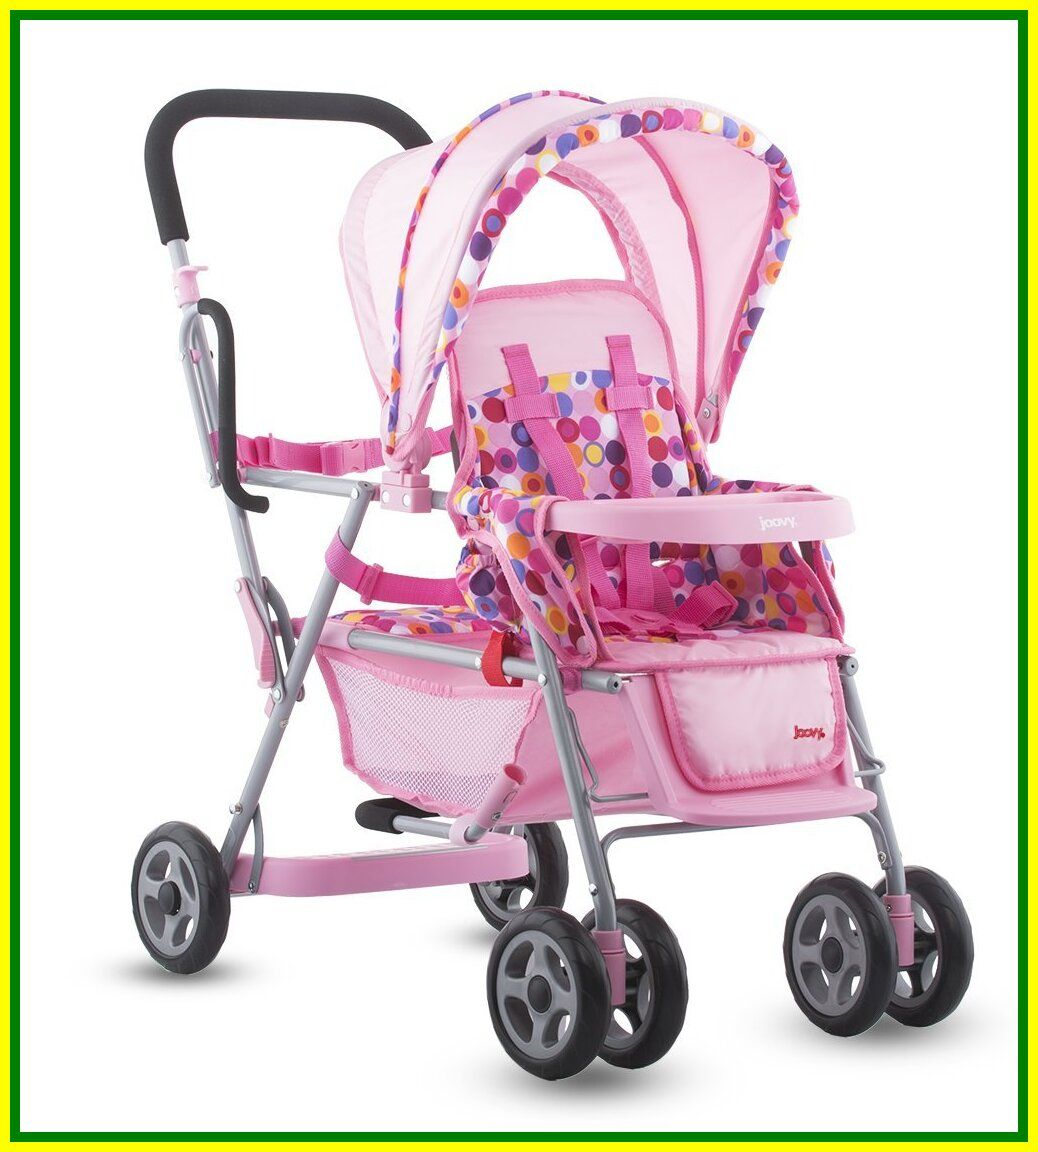 52 reference of stroller Double joovy in 2020 Baby doll